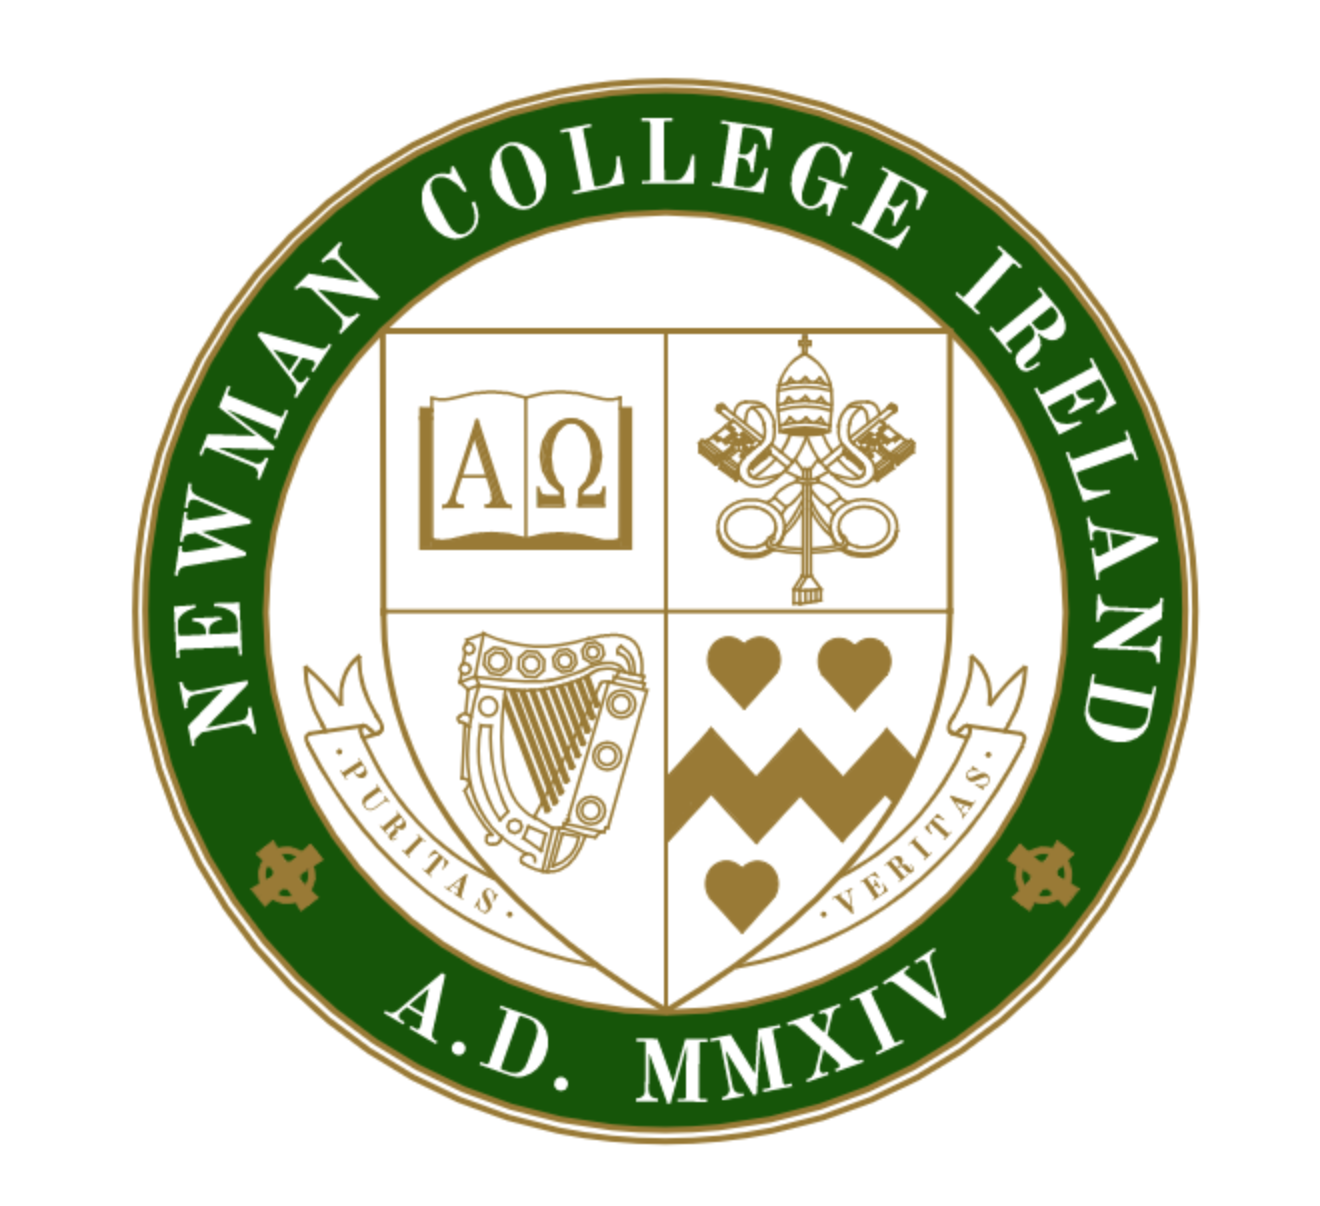 "- The four quadrants of the shield represent key tenets of Newman College.The seal of Newman College Ireland consists of a shield divided into four quadrants and the motto, Puritas et veritas, both encircled by a green band inscripted with ""Newman College Ireland"" and the date of its founding, 2014."